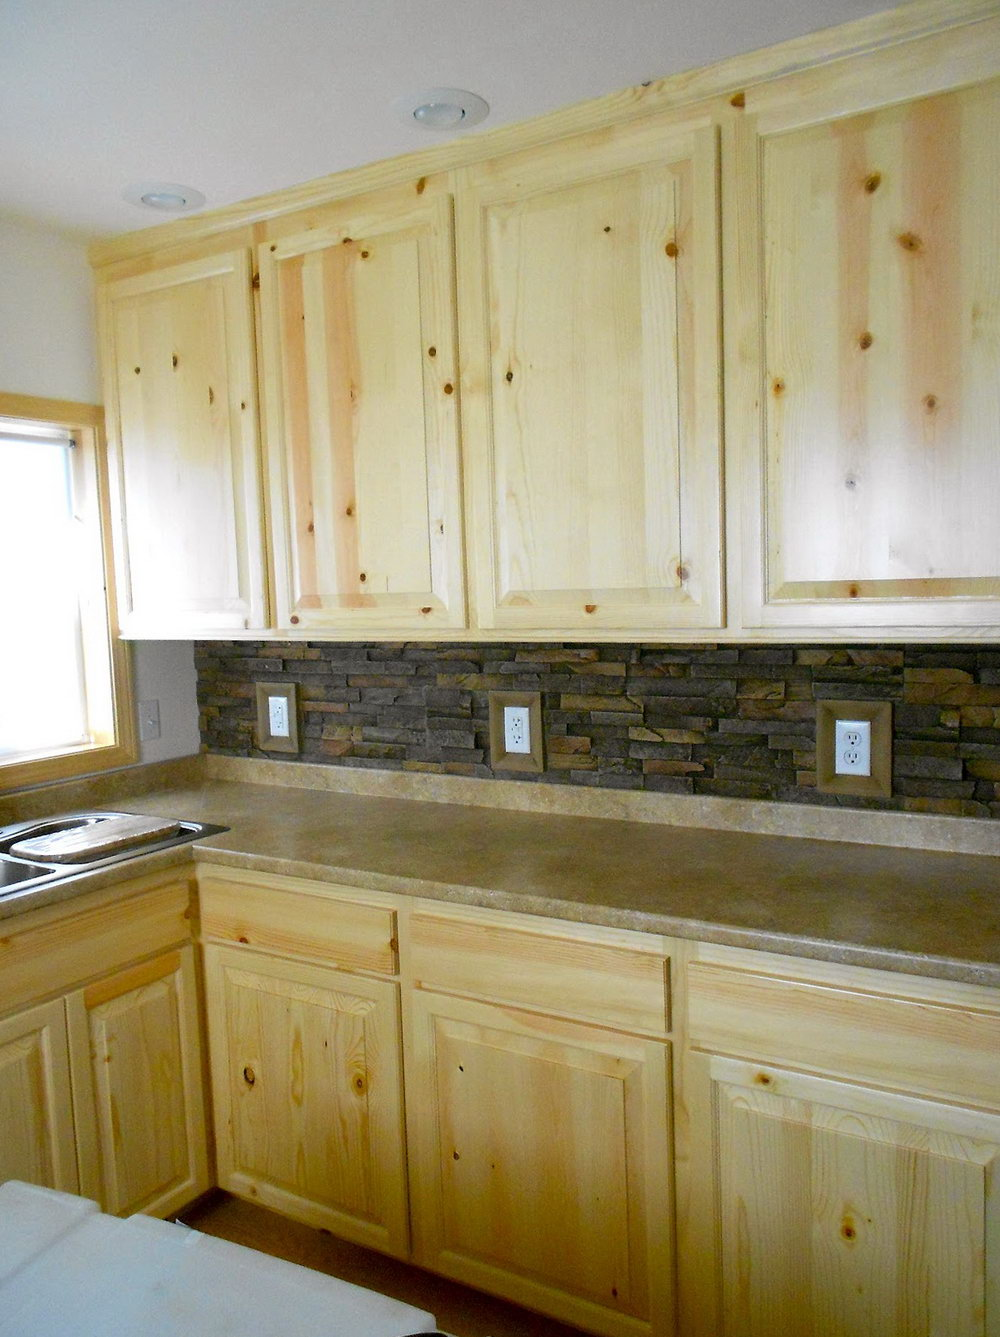 Knotty Pine Kitchen Cabinets For Sale